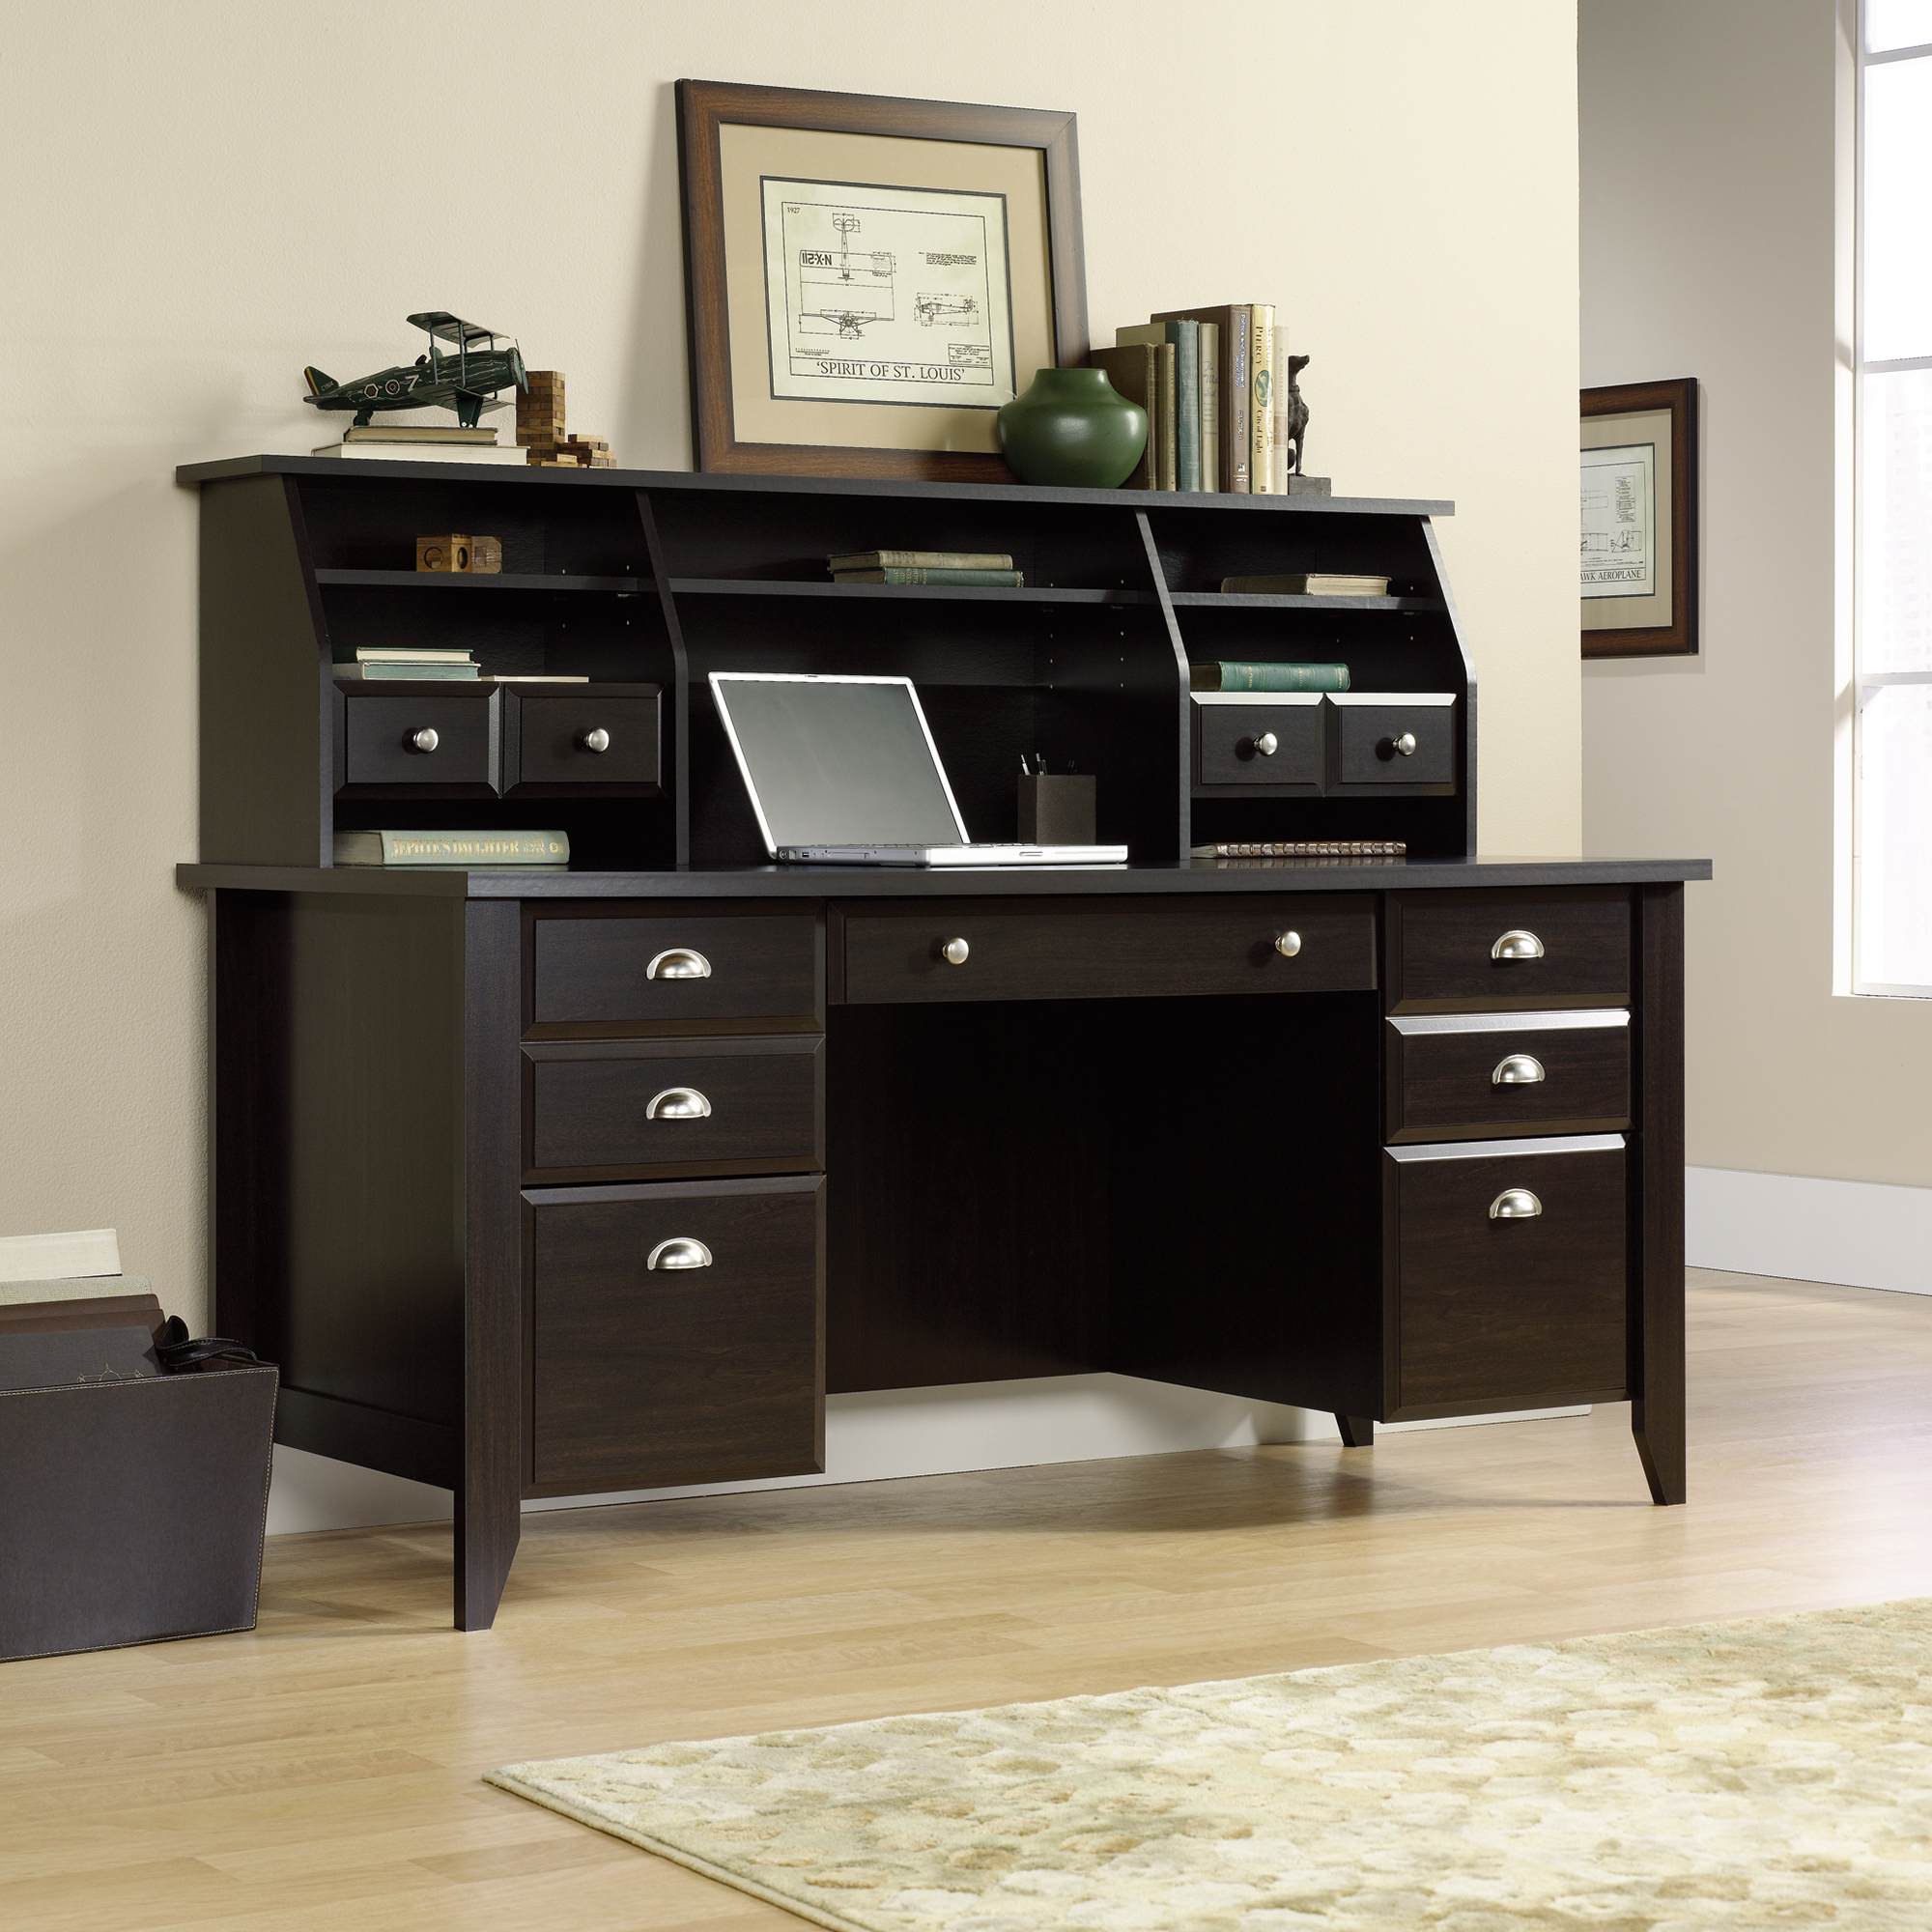 Desk with File Cabinet Drawer | Desks at Walmart | Sauder Computer Desks